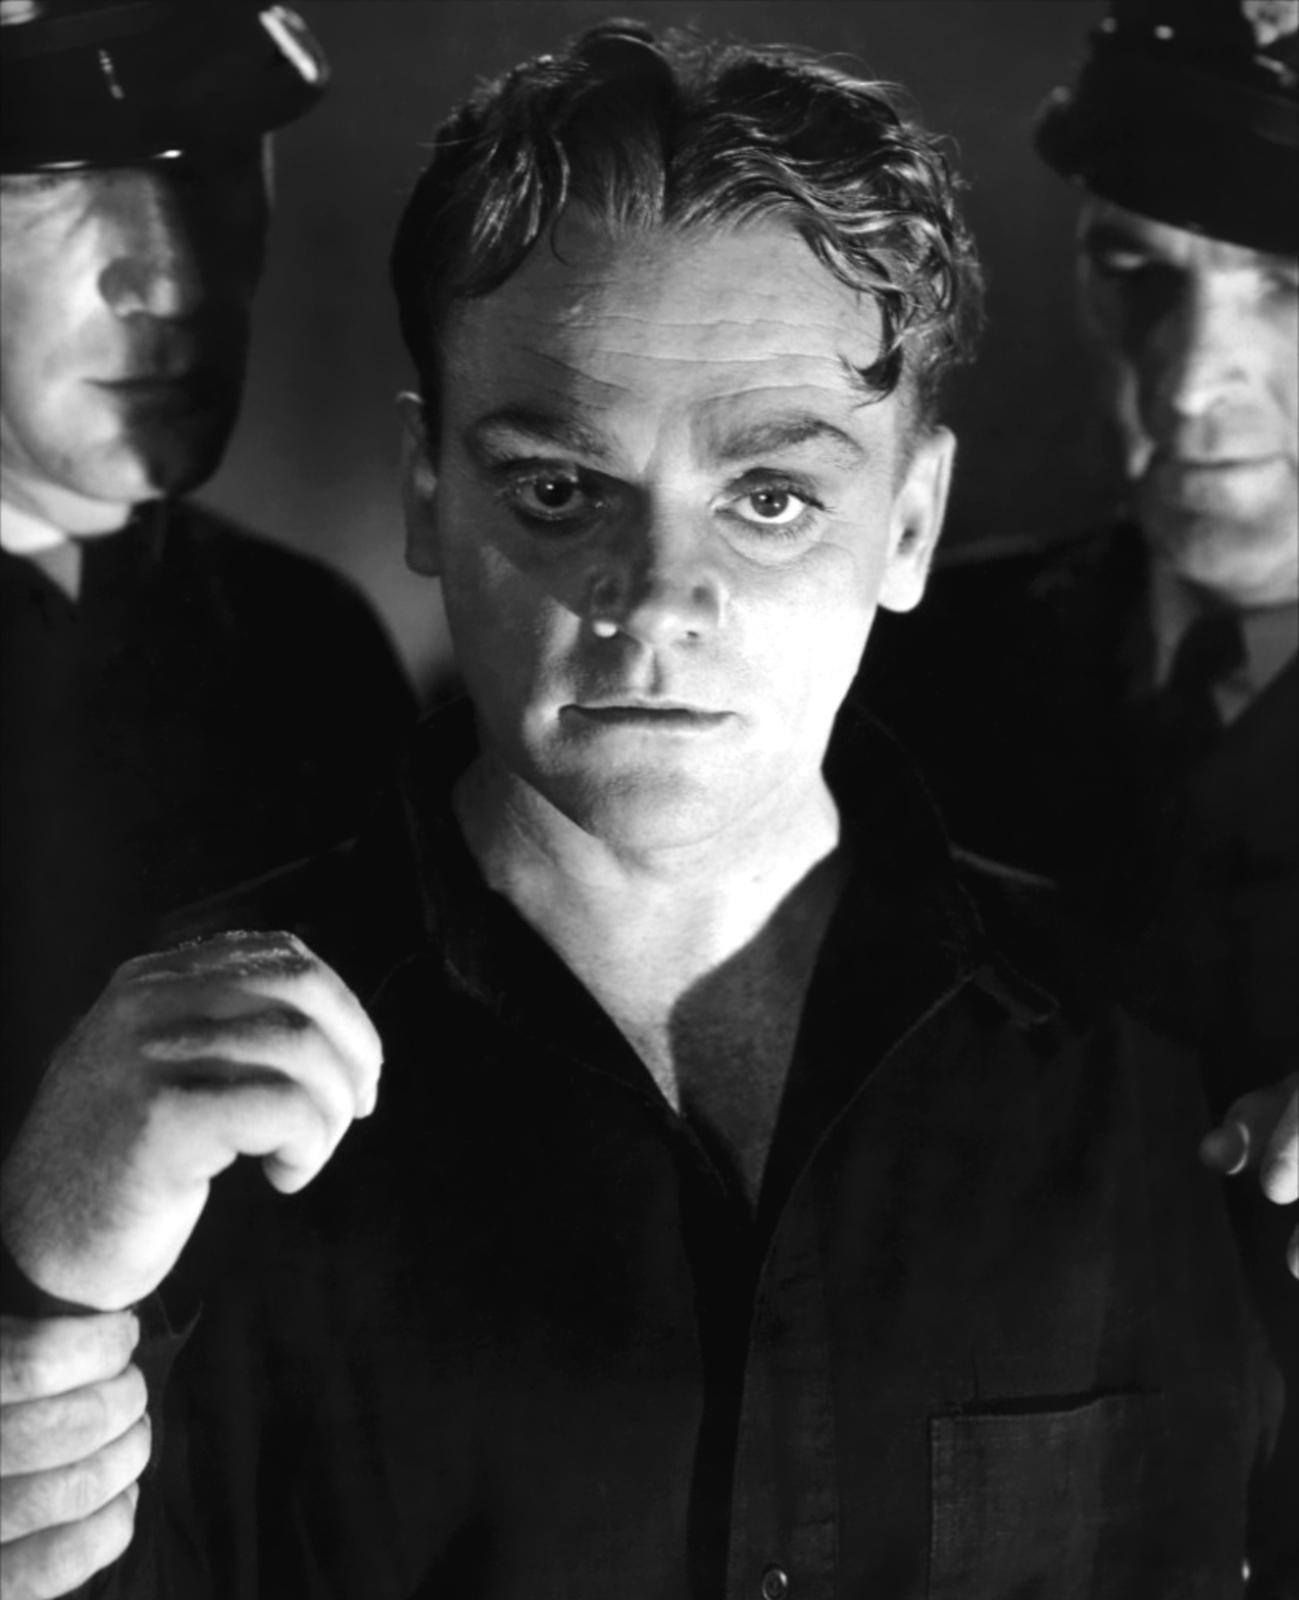 The incomparable James Cagney as gangster William